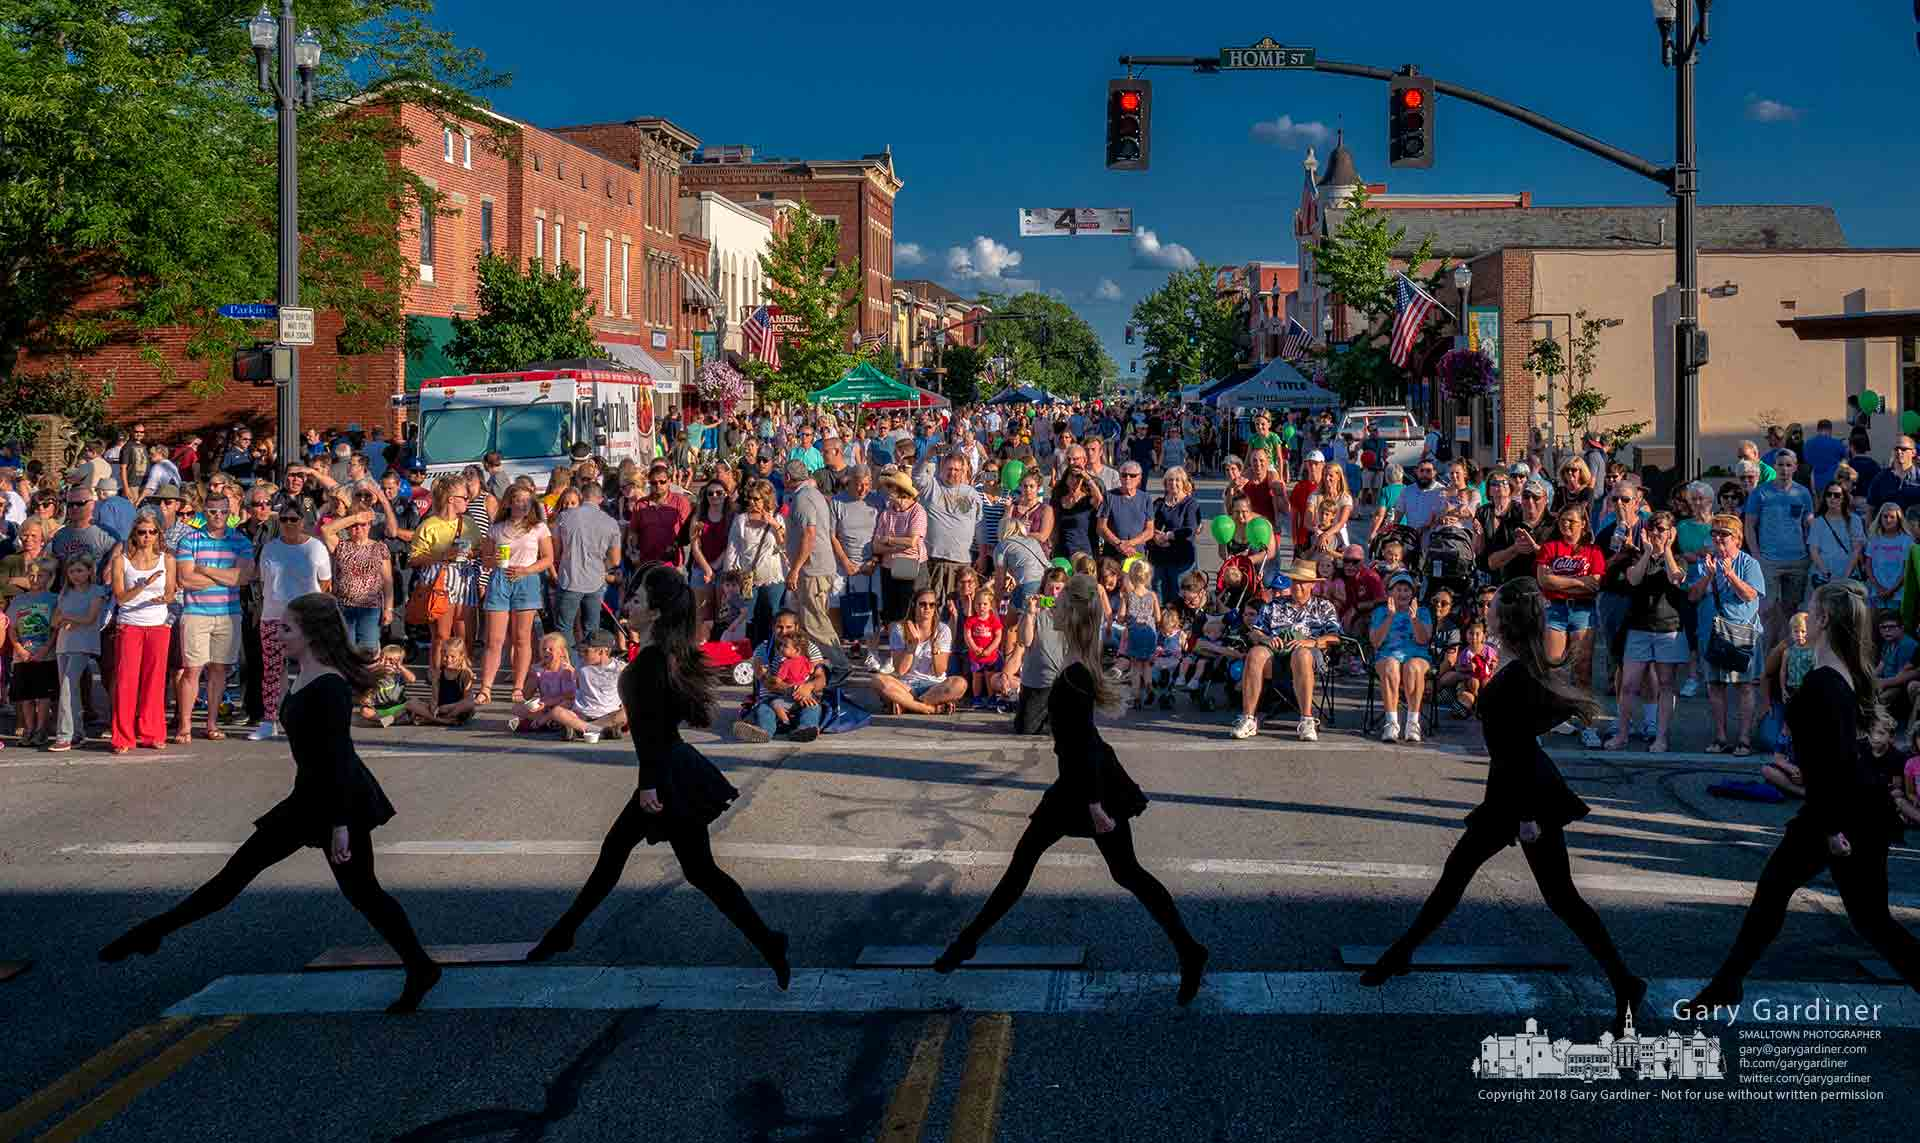 Irish dancers perform in the intersection of State and Home Streets during Fourth Friday, the monthly summer celebration in Uptown that closes State Street to traffic. My final Photo for July 27, 2018.